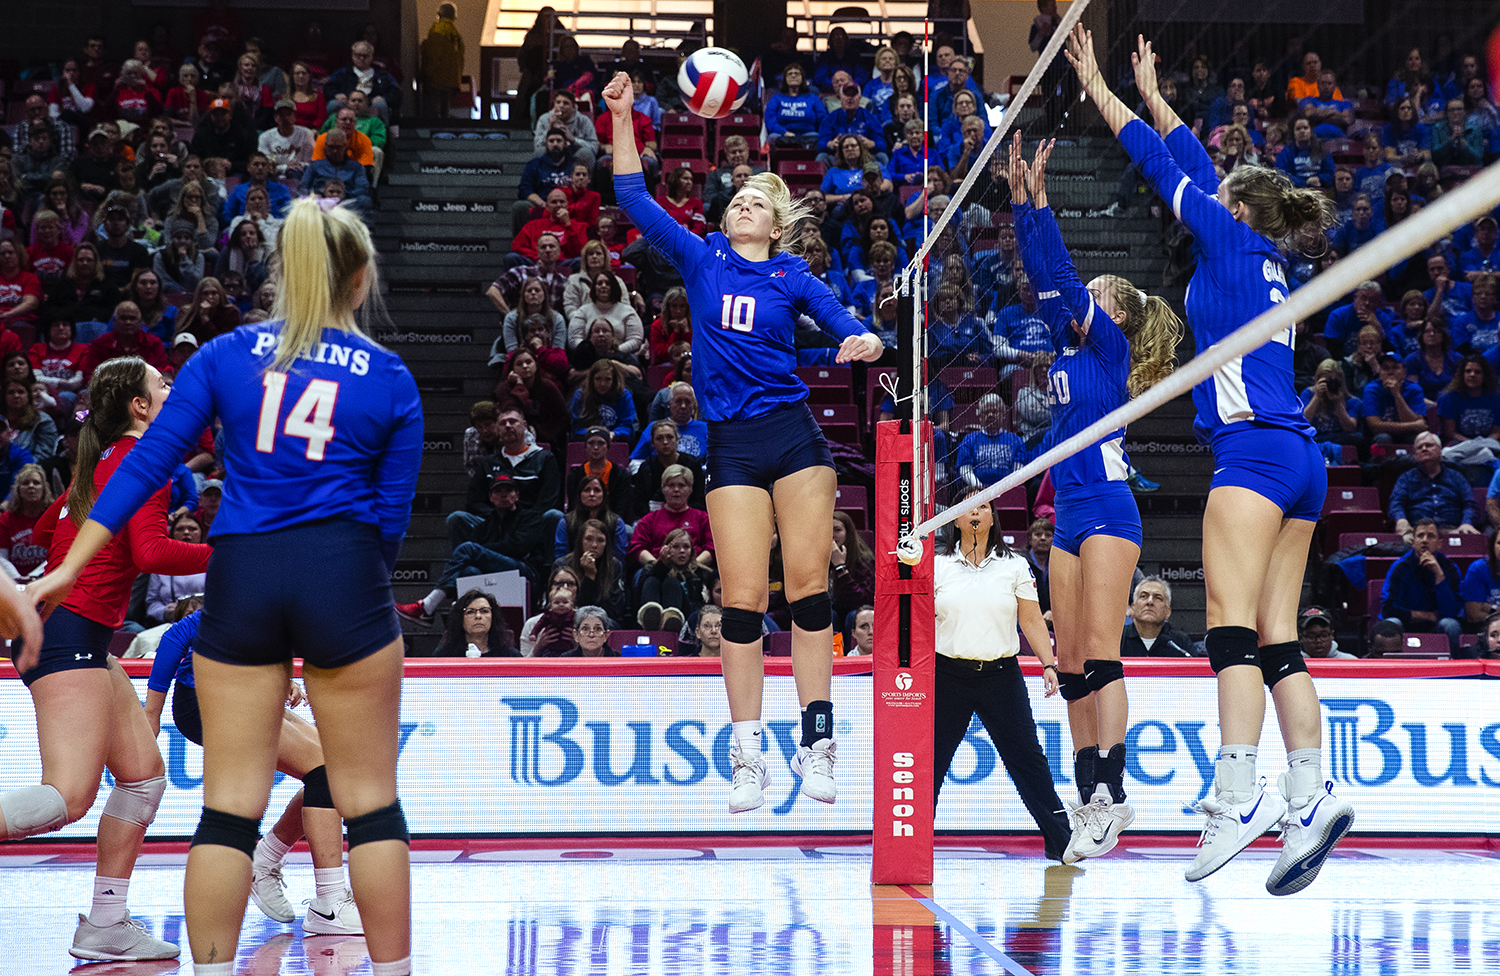 Pleasant Plains' Allie Edwards returns the ball against Galena during the IHSA Class 2A Volleyball championship at Redbird Arena in Normal Saturday, Nov. 10, 2018. [Ted Schurter/The State Journal-Register]